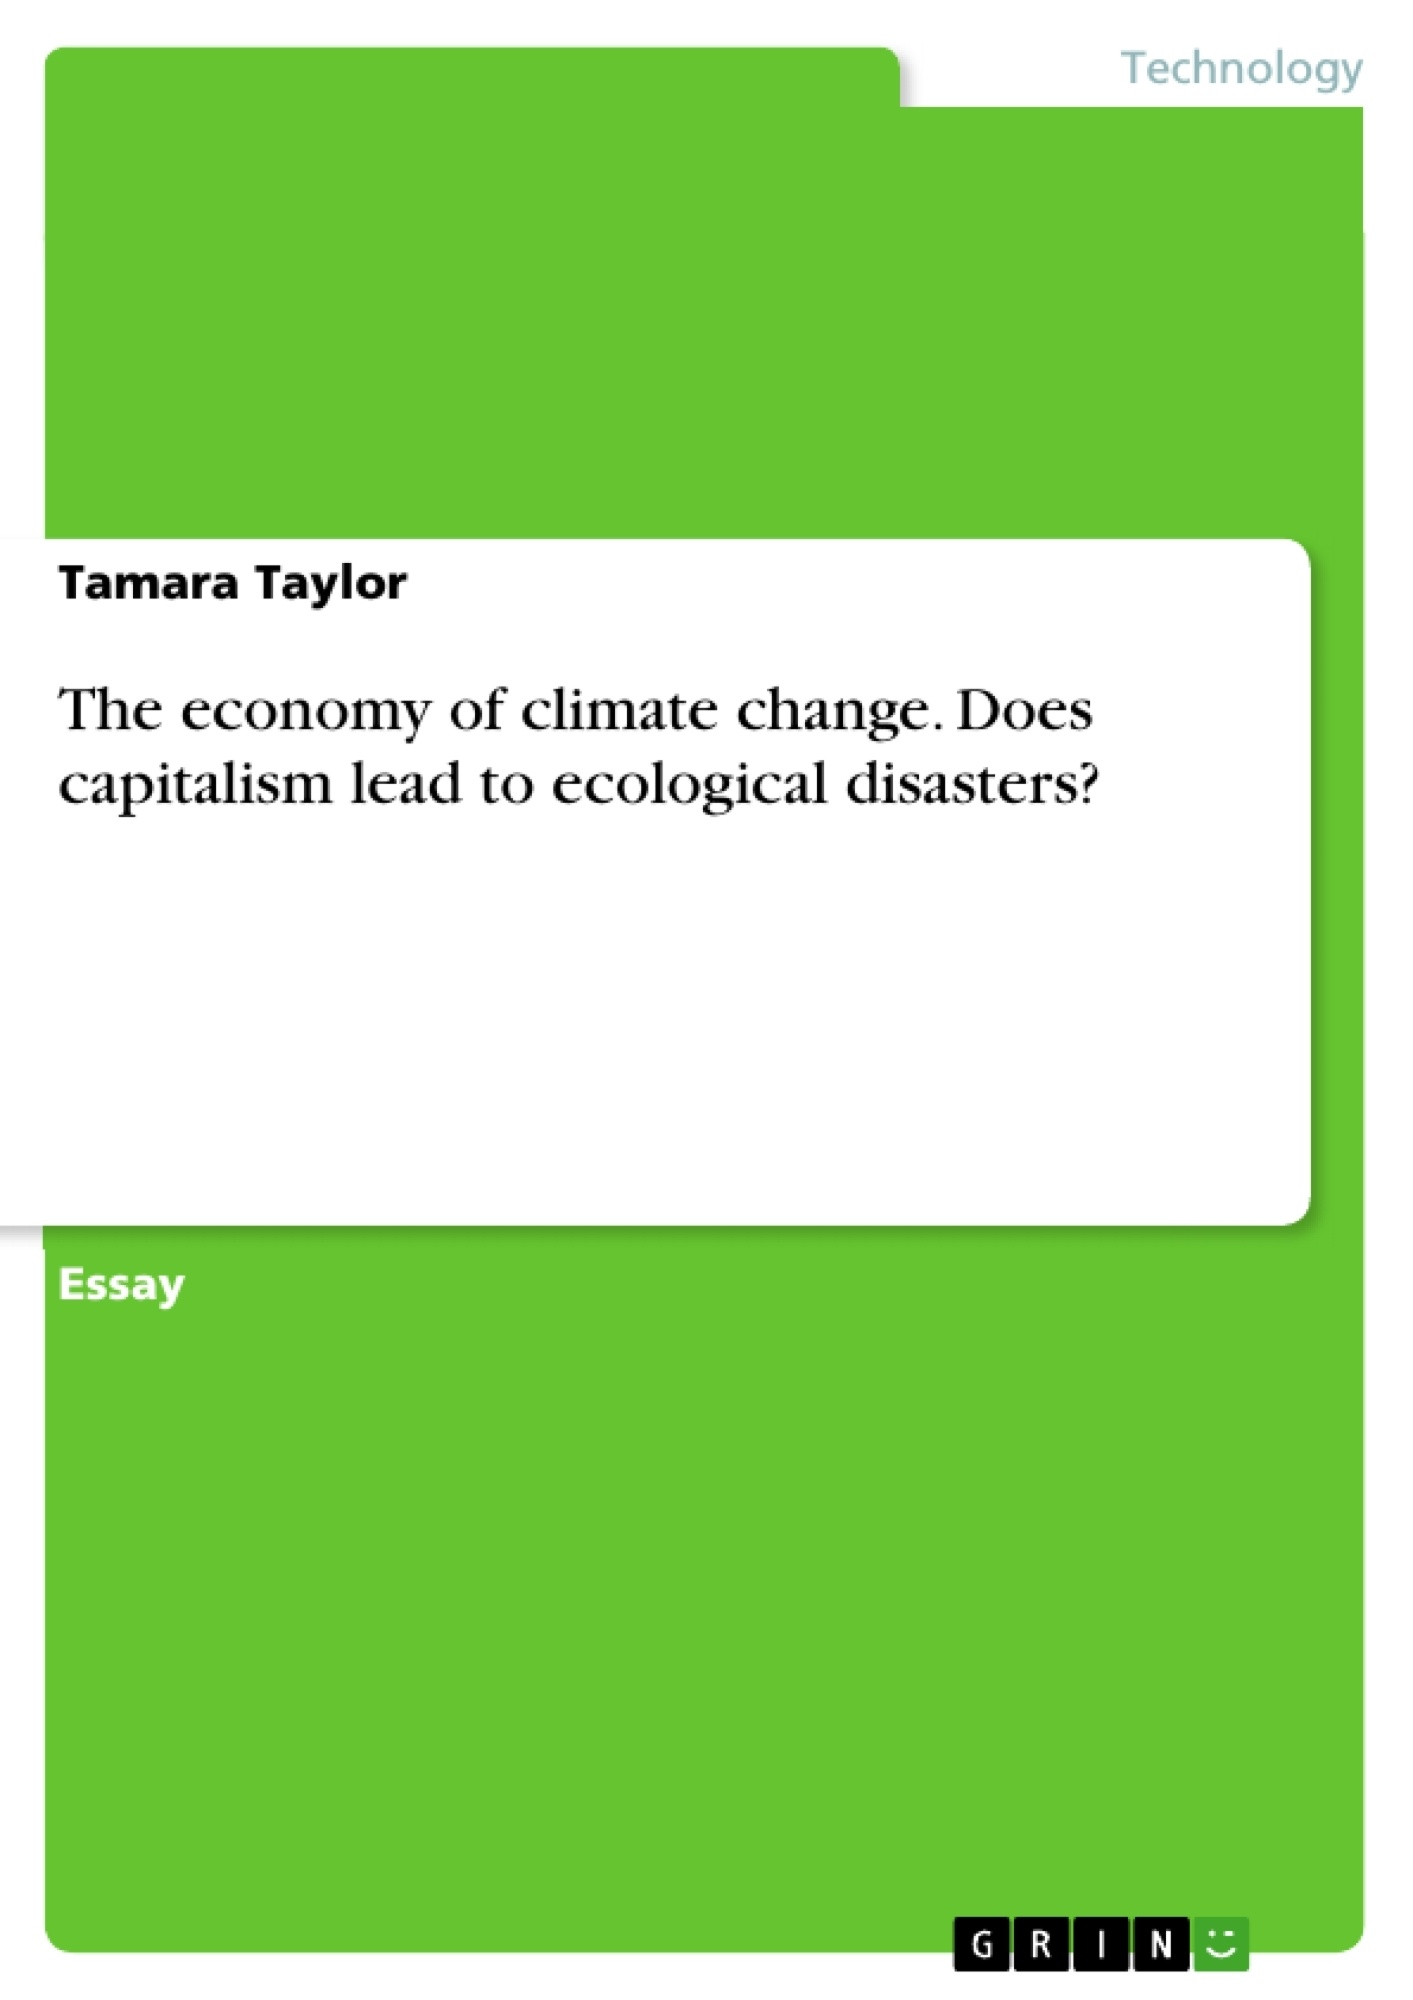 thesis on climate change adaptation